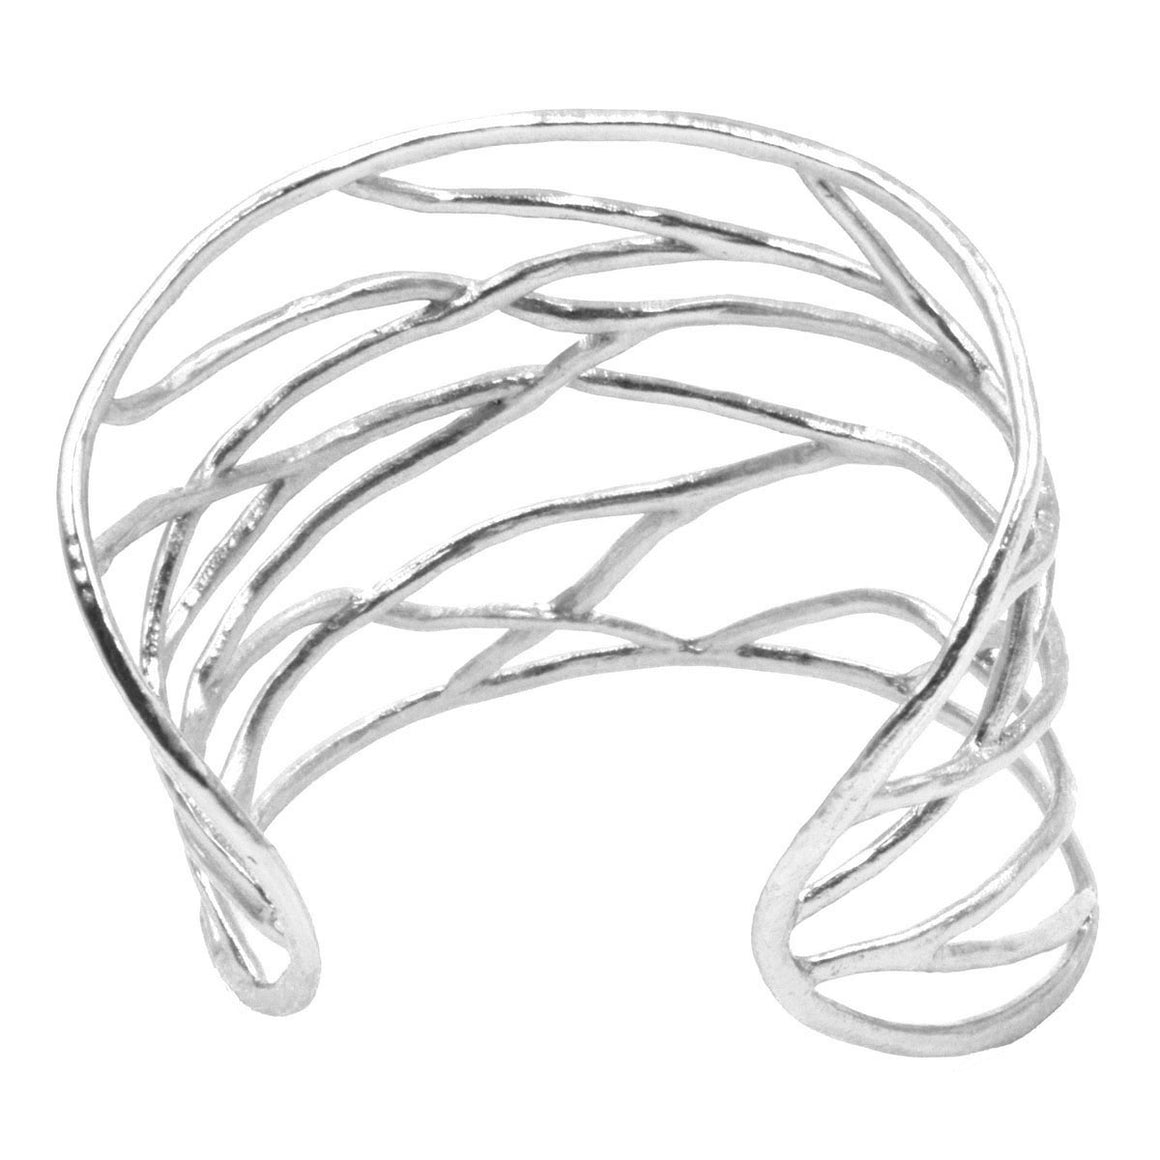 Intricate Branches Statement Cuff - Platinum Silver